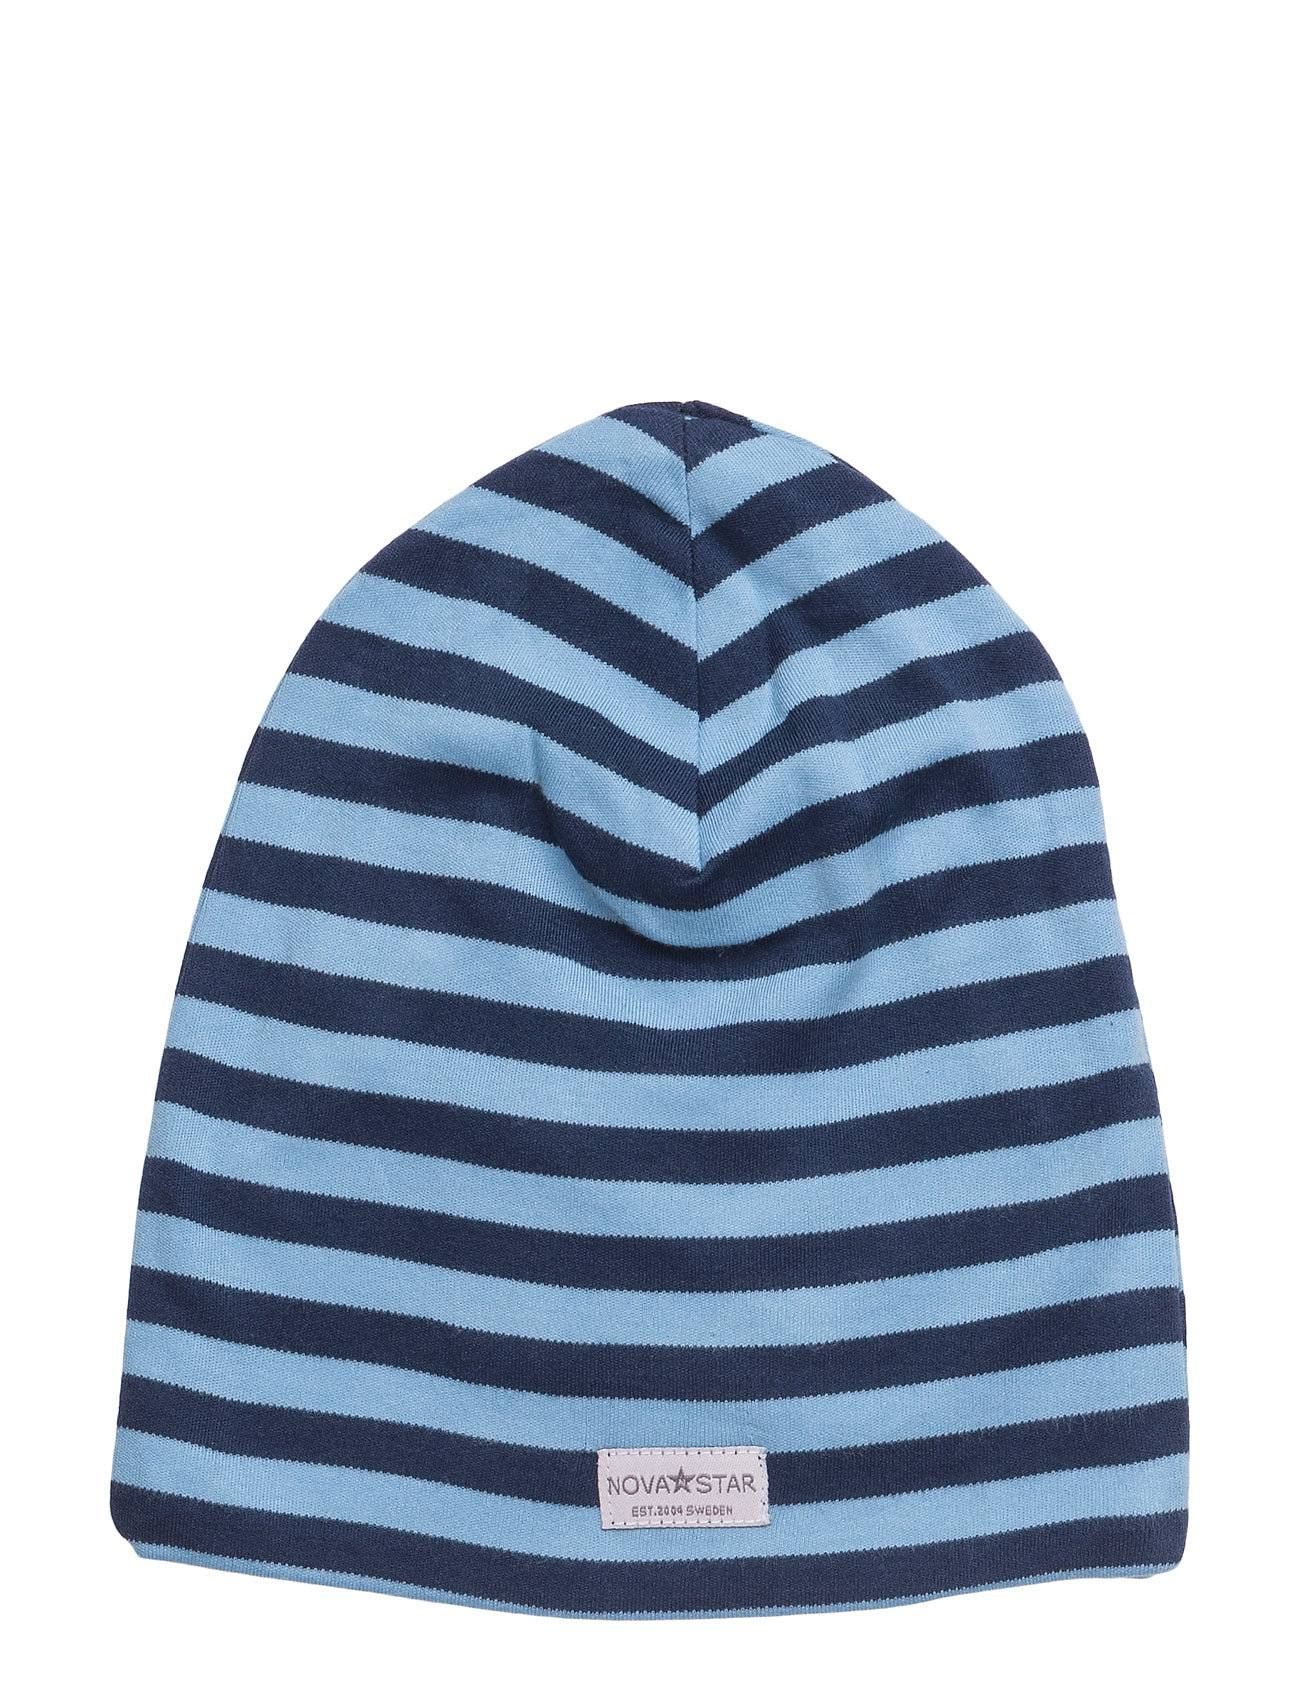 NOVA STAR Nb Blue Striped Bean